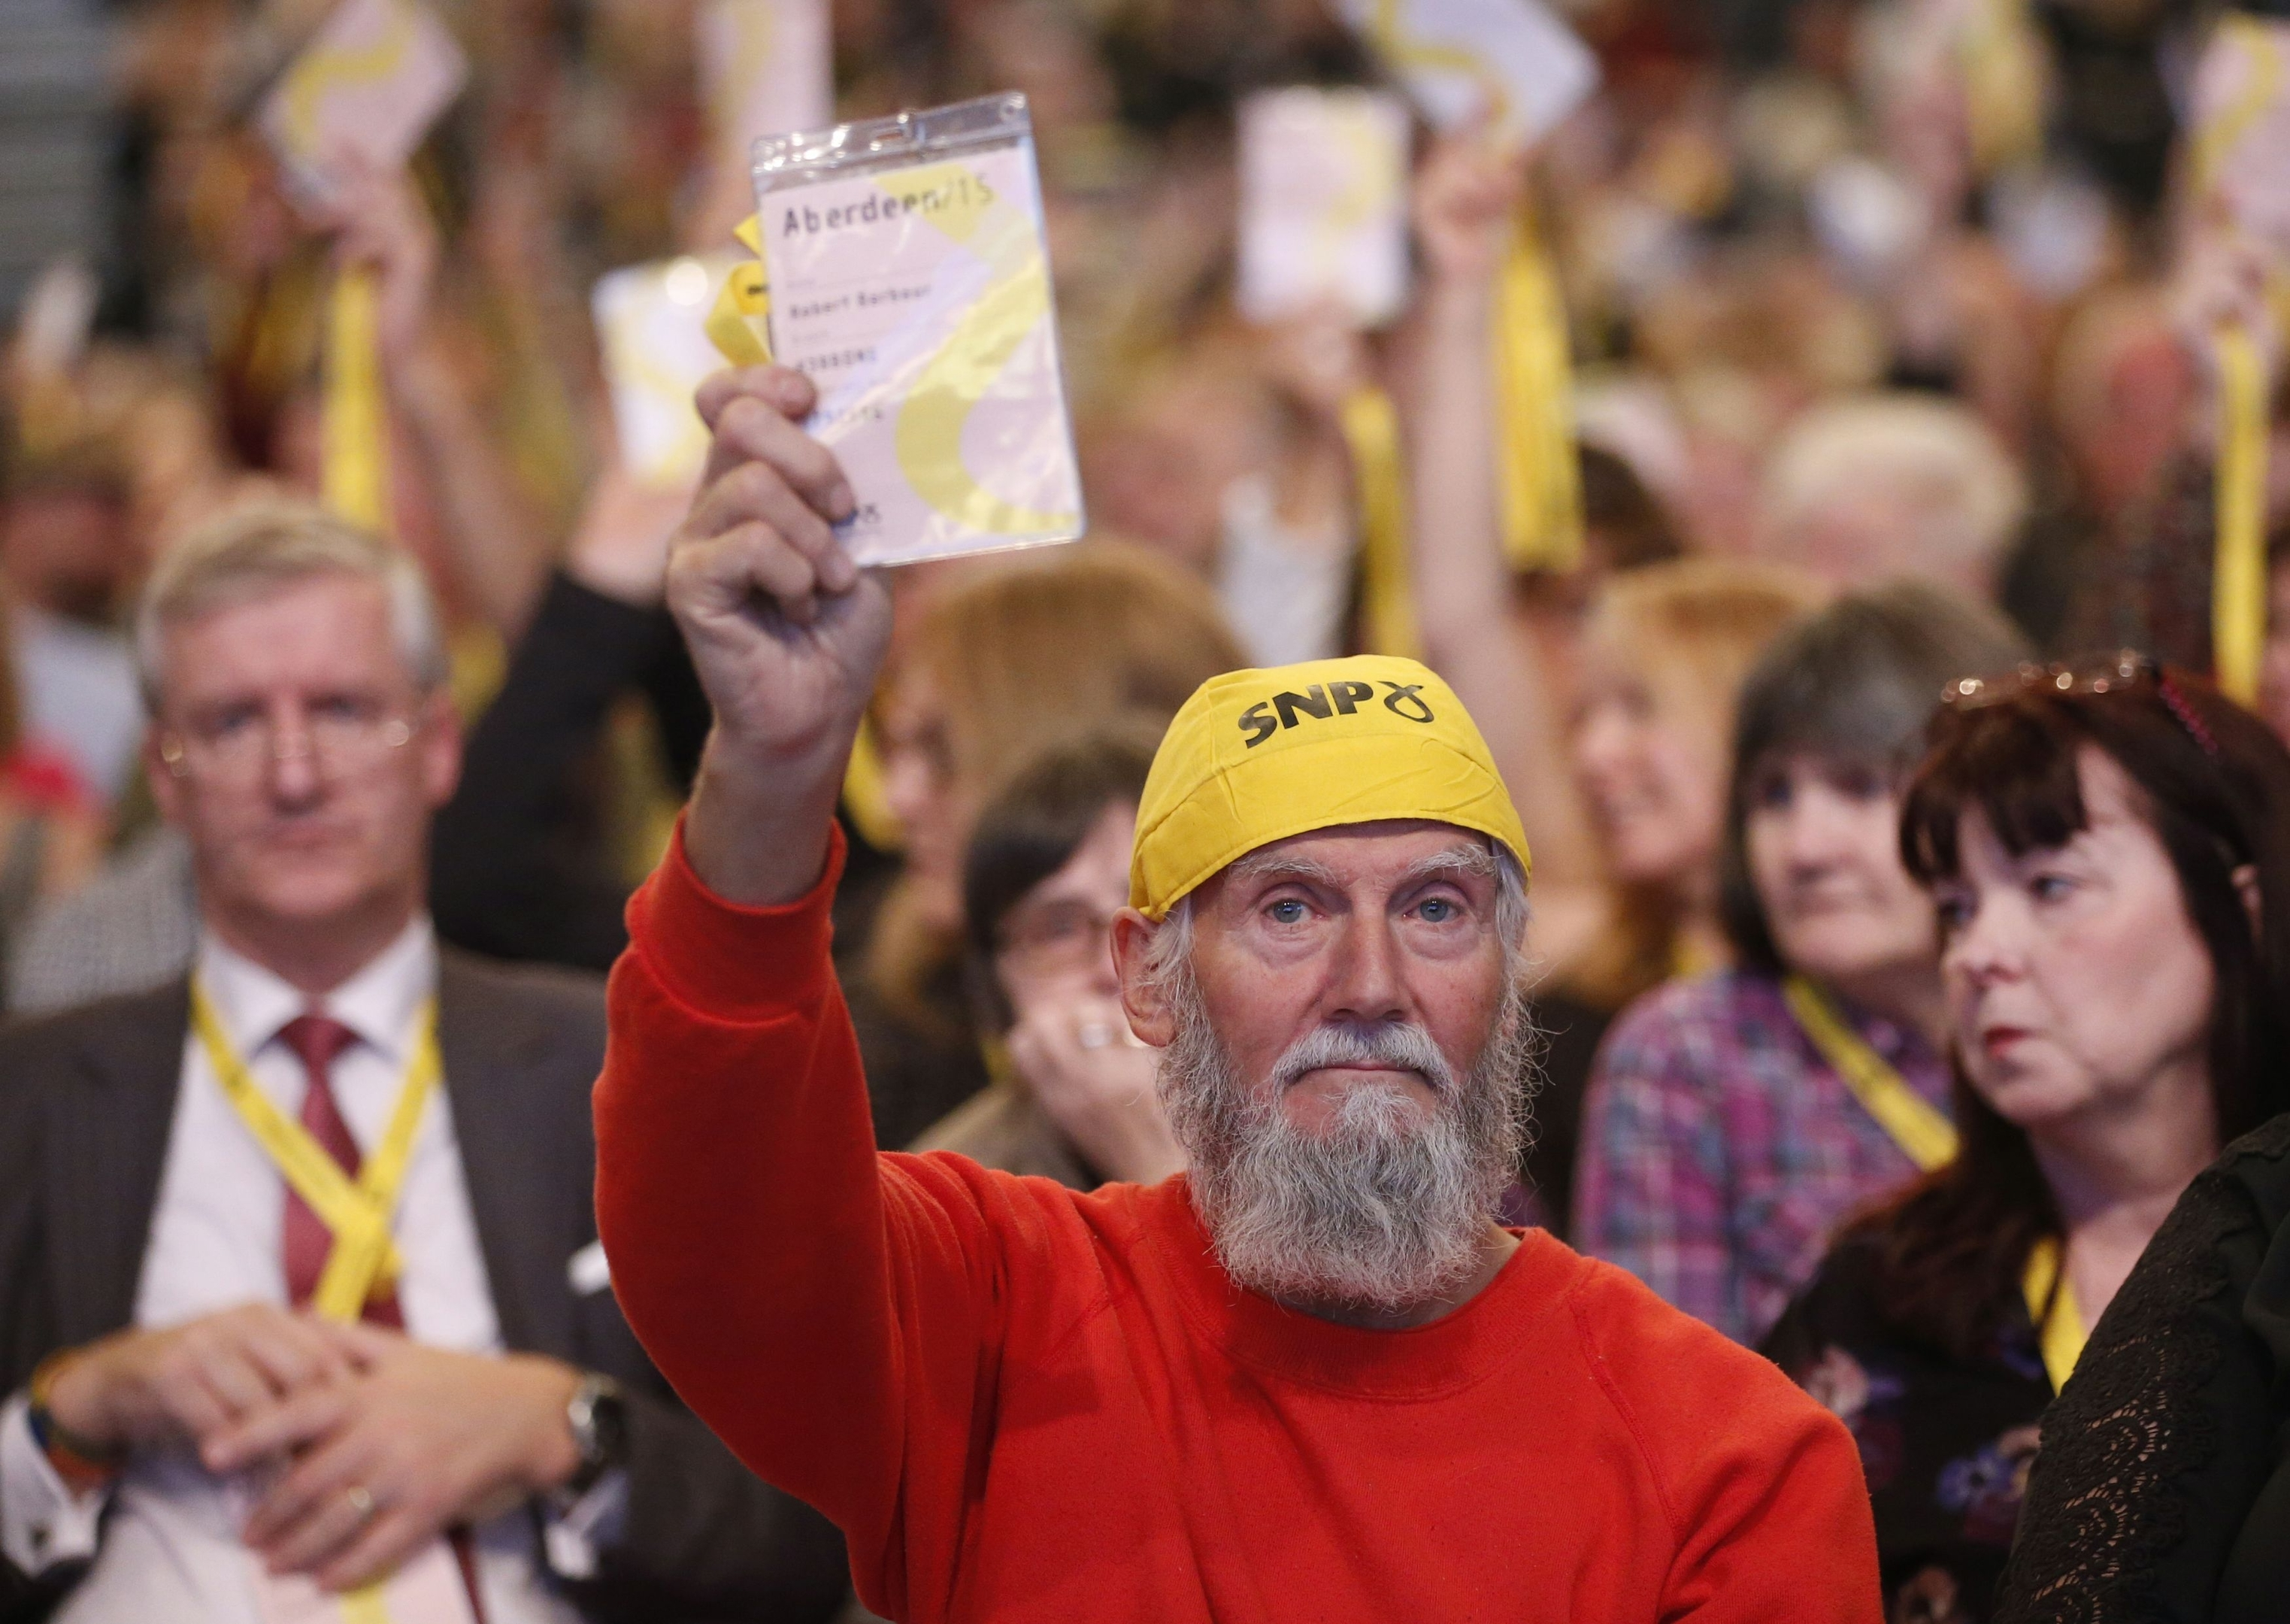 Conference delegates during the SNP National conference